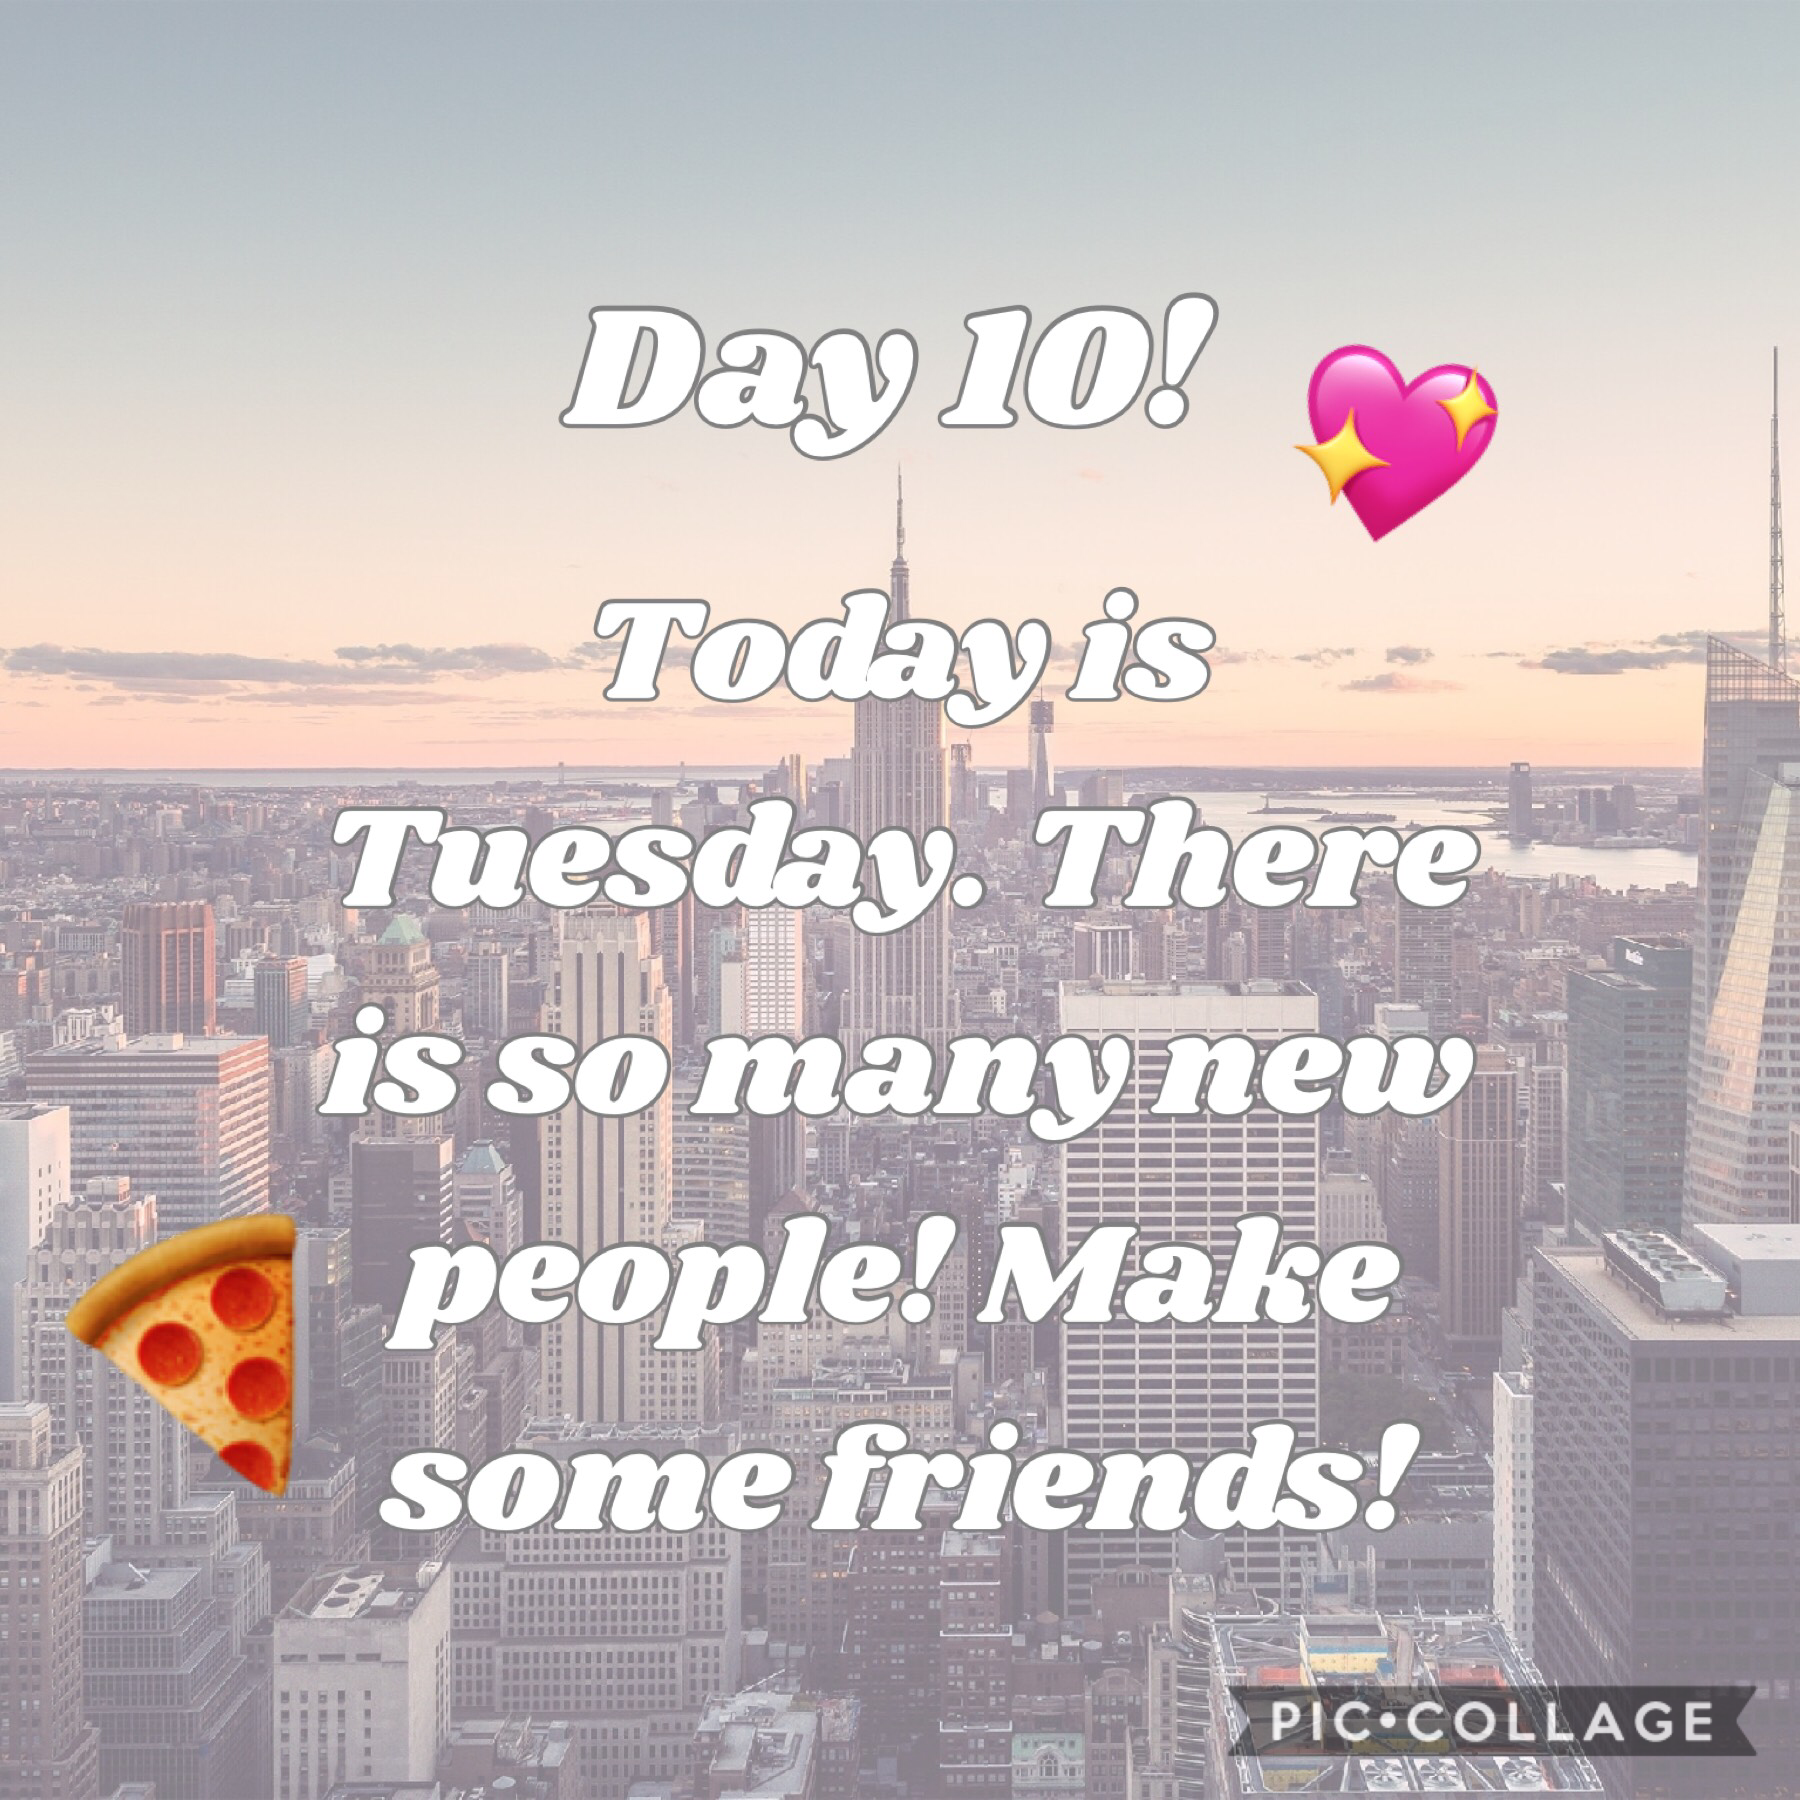 Tap 💖 stands for my friend audreyhepburn24 and the 🍕is my friend Fun-Life.